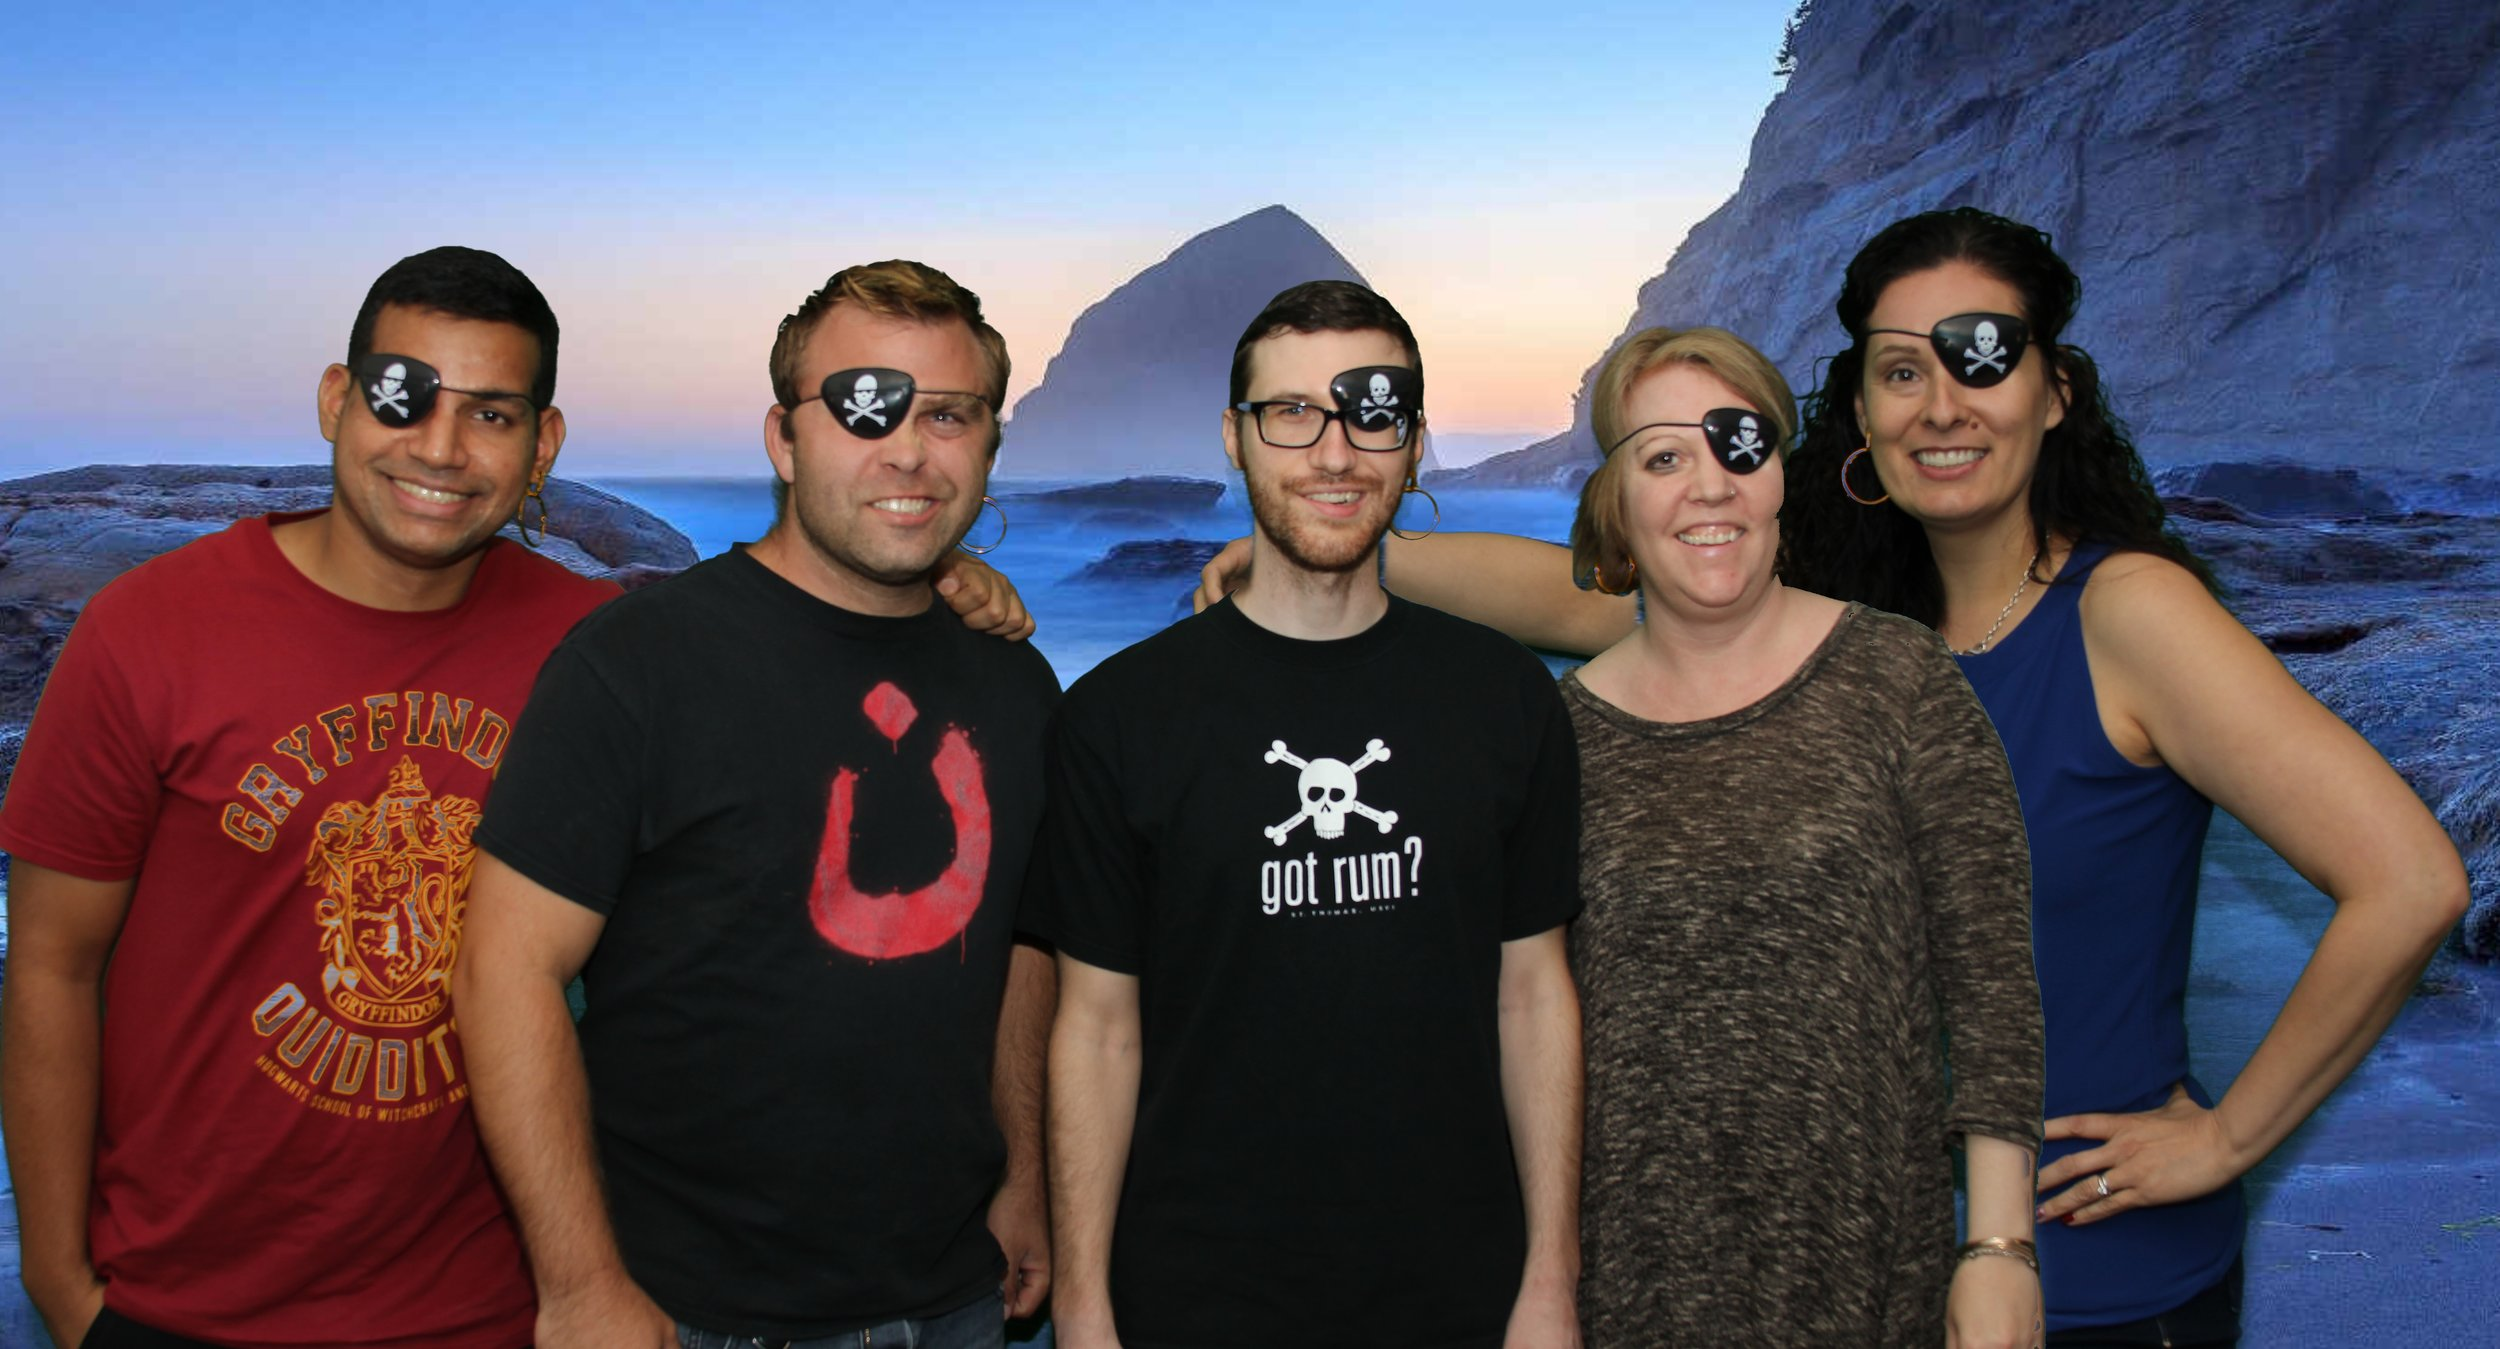 Left to right: Vijay, Tim, Brian, Lora and Ginny